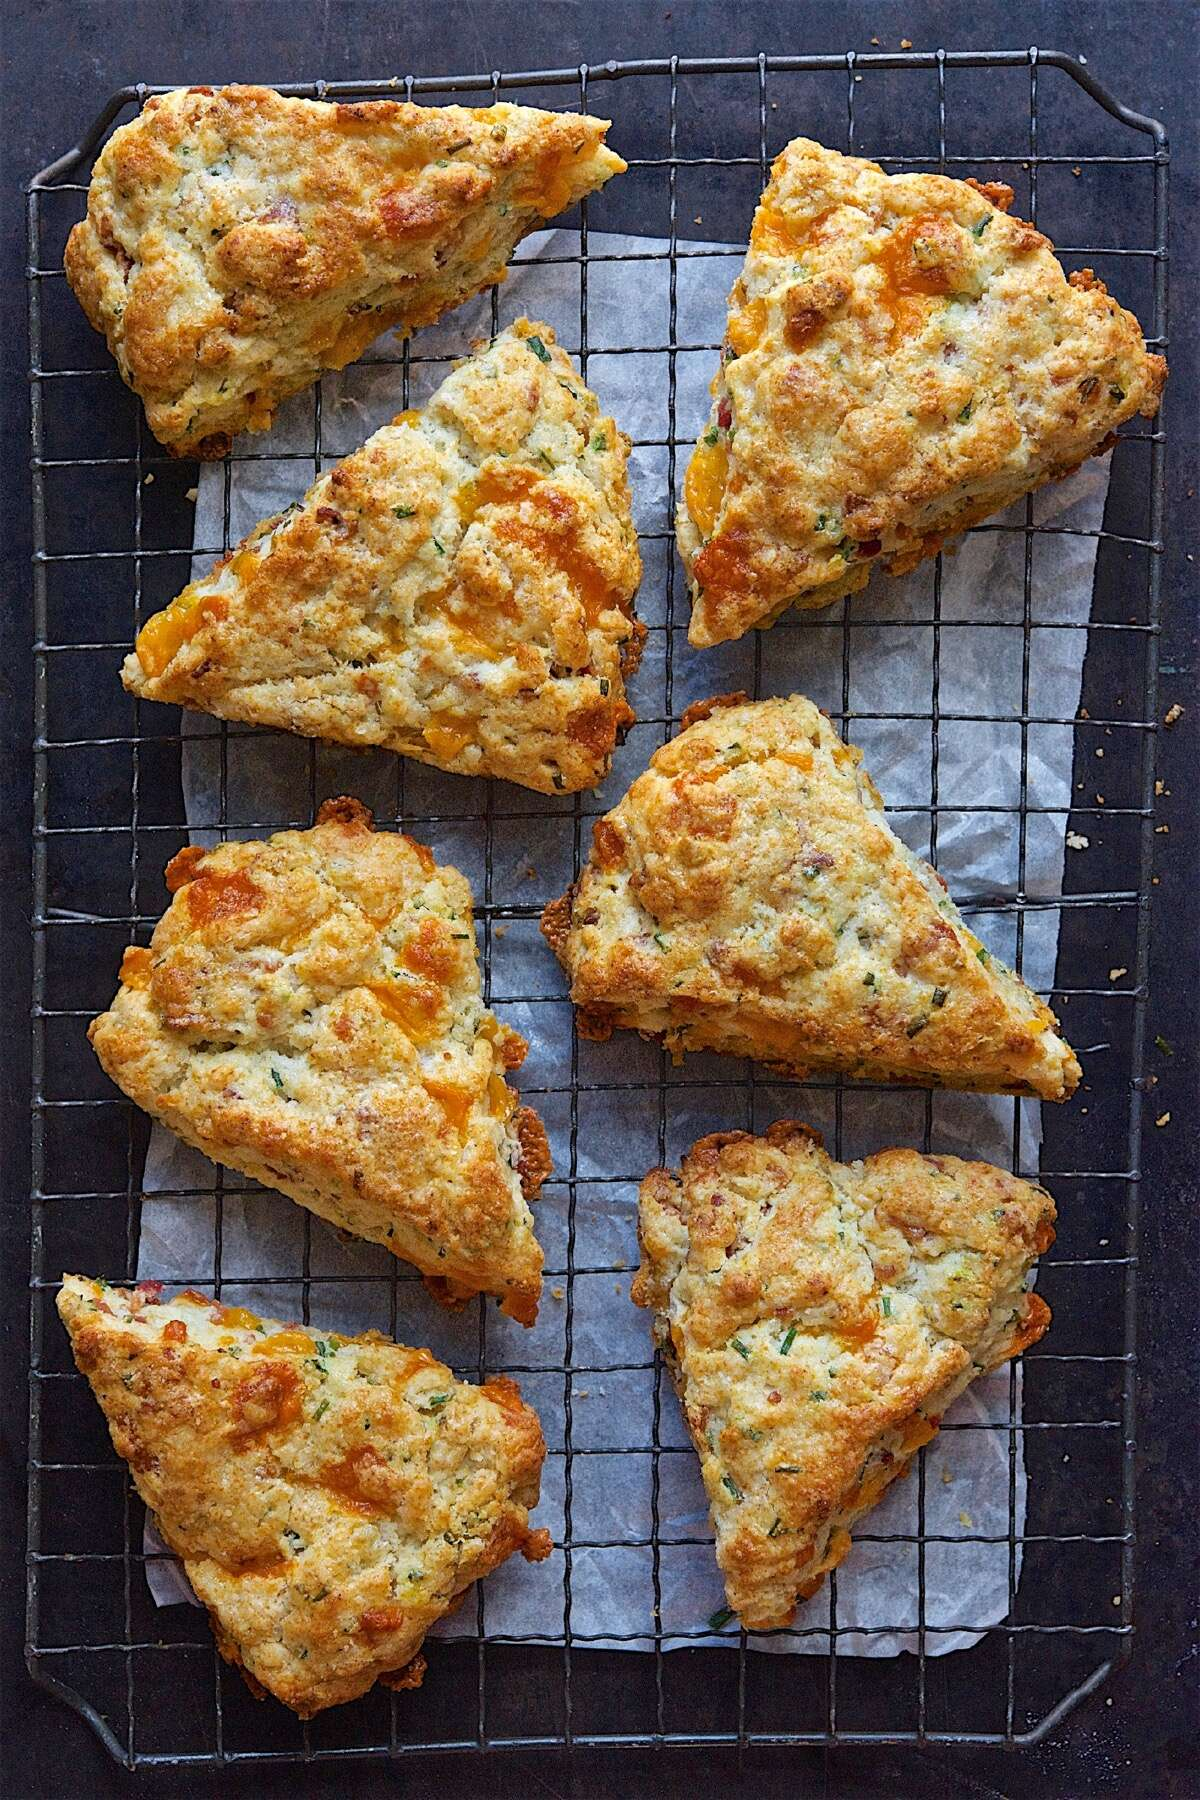 Bacon-cheddar-chive scones on a cooling rack.